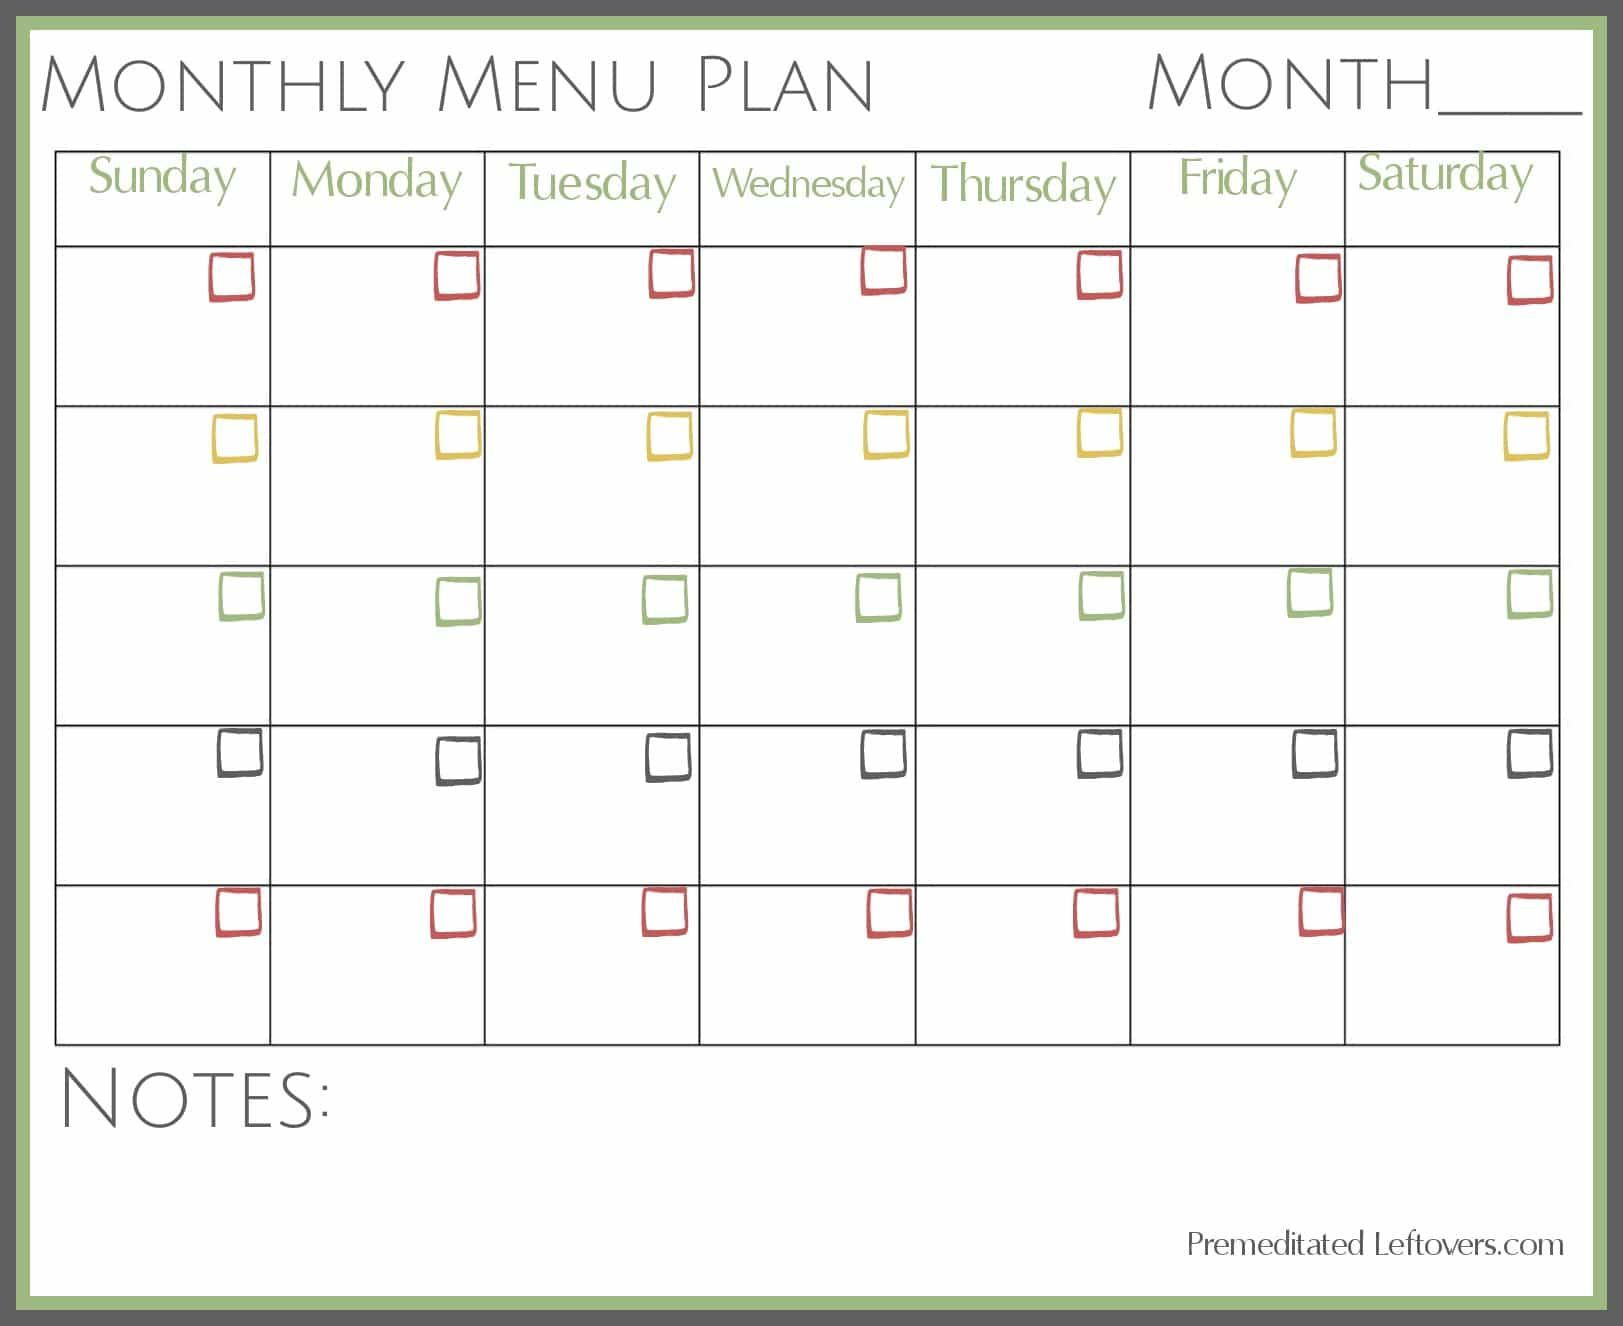 Free Printable Monthly Menu Plan